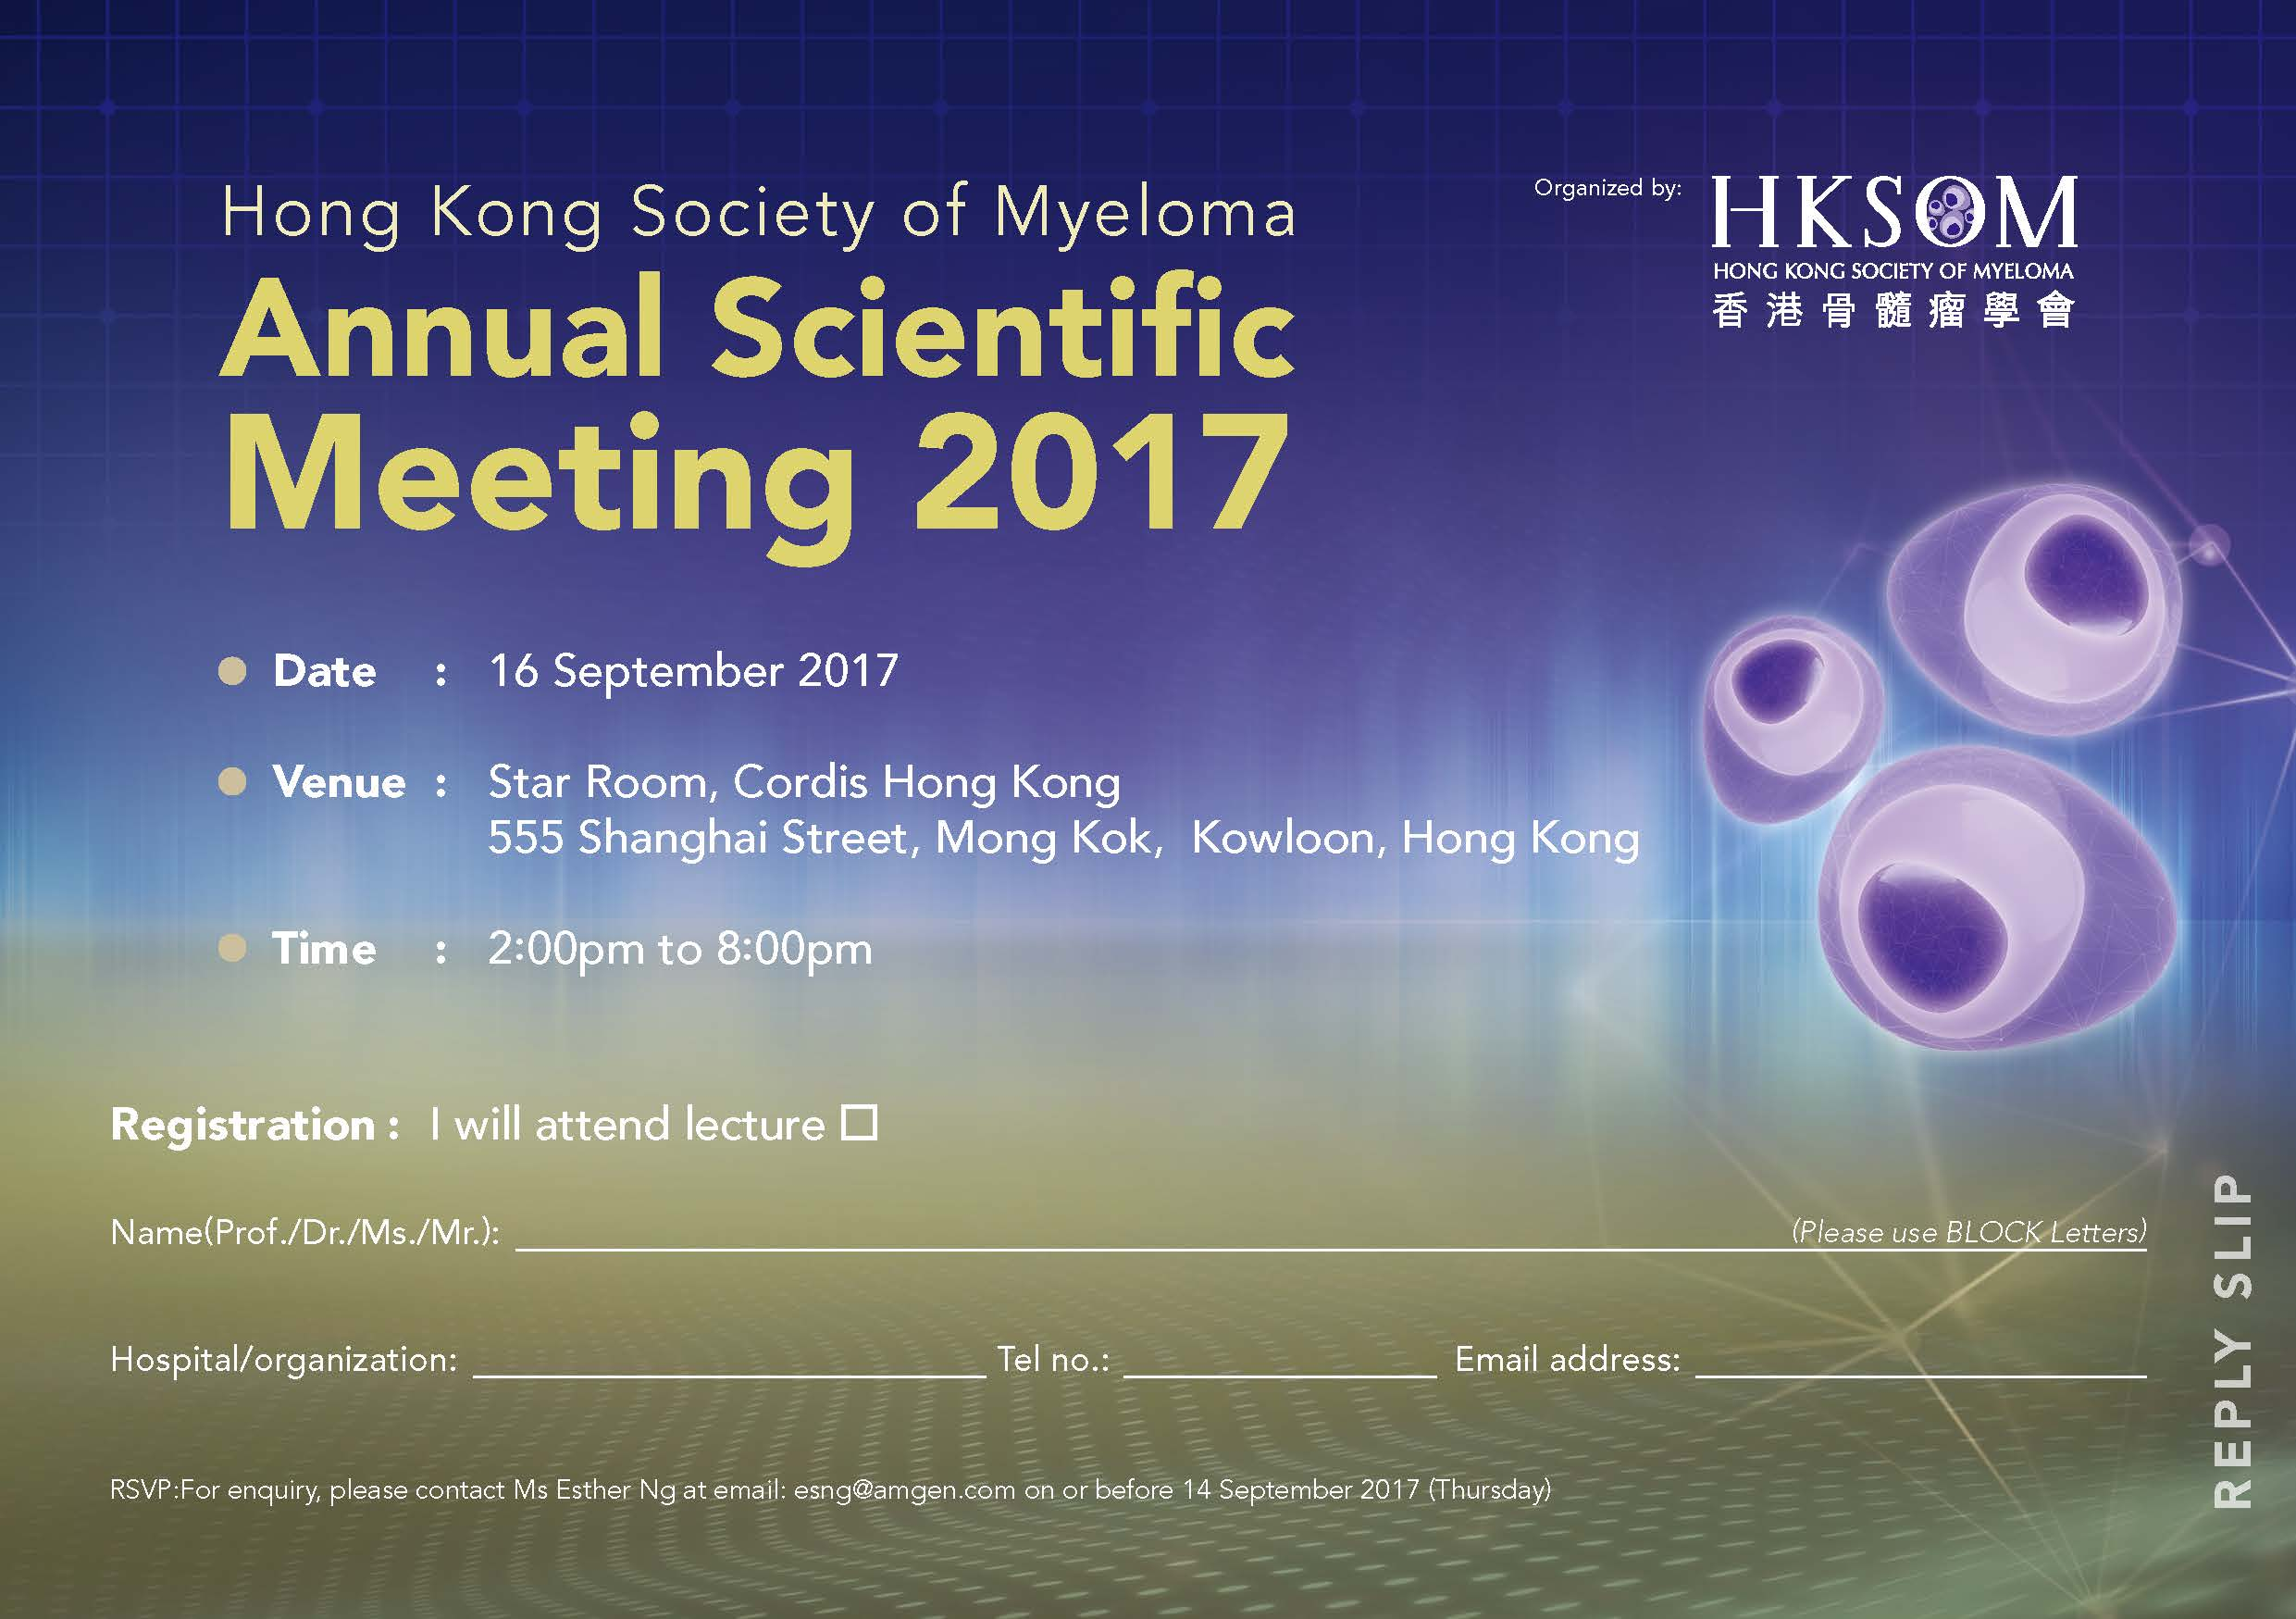 Annual Scientific Meeting 2017